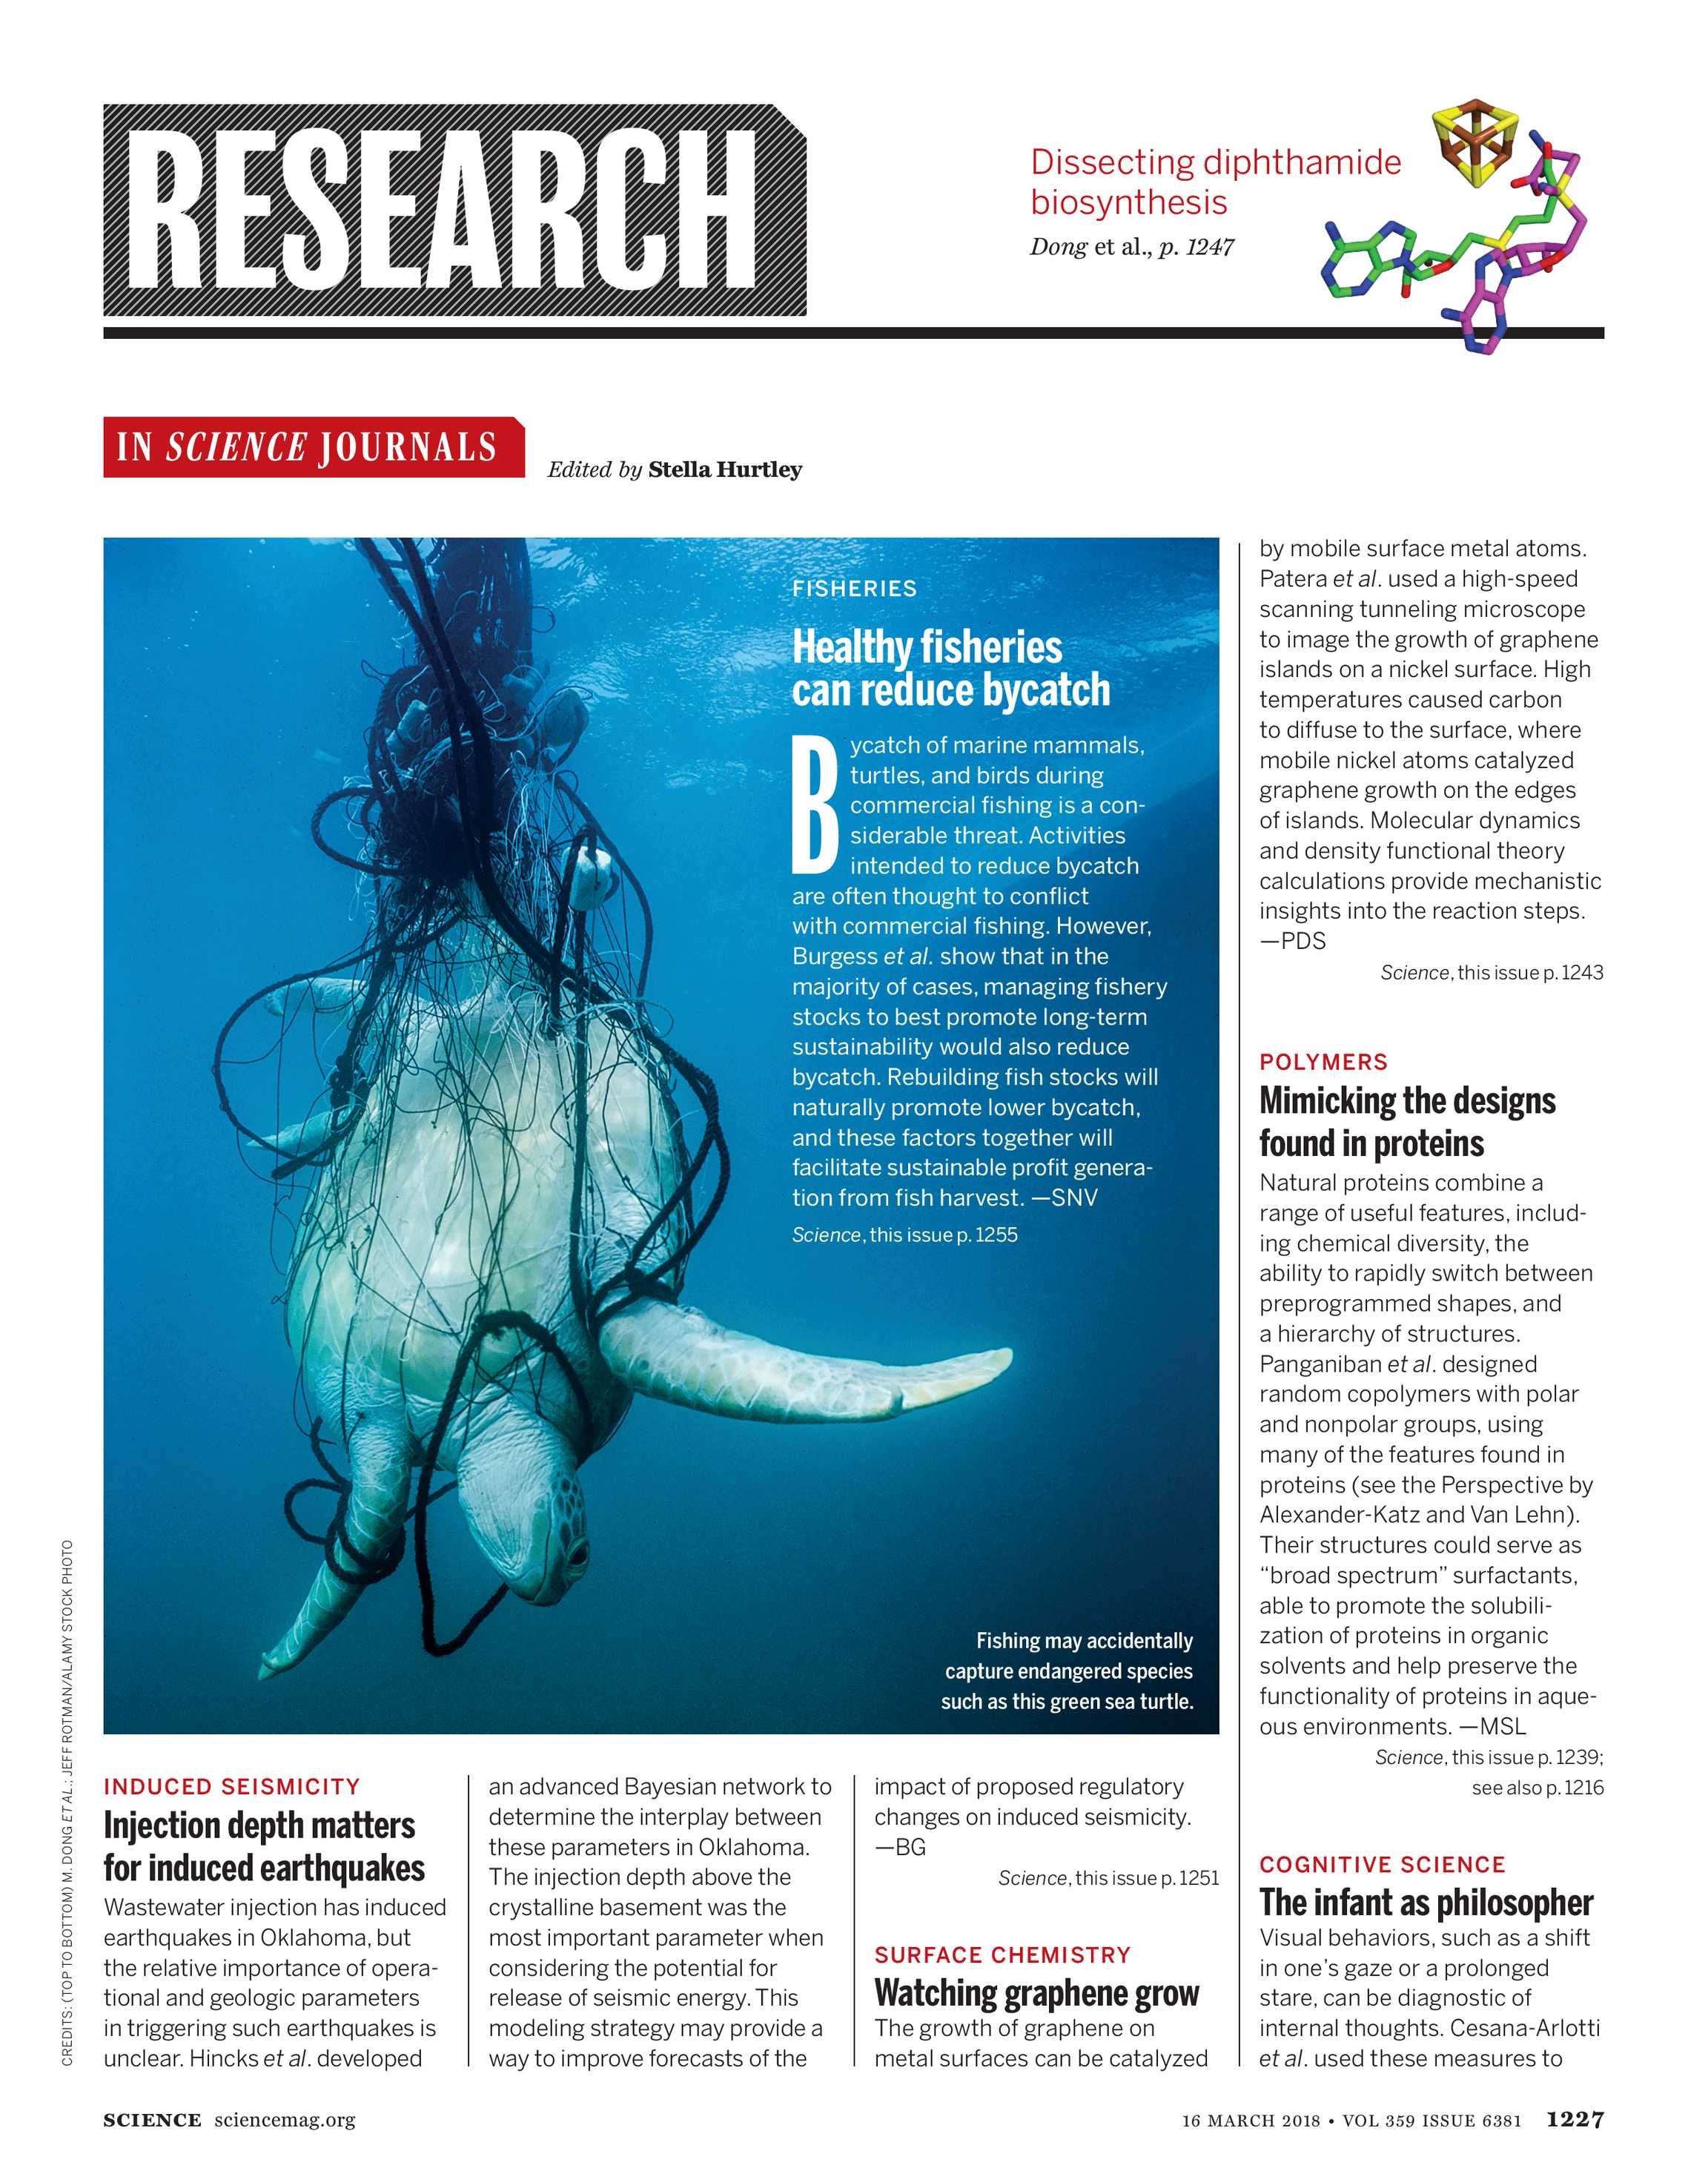 Science Magazine - March 16, 2018 - page 1227